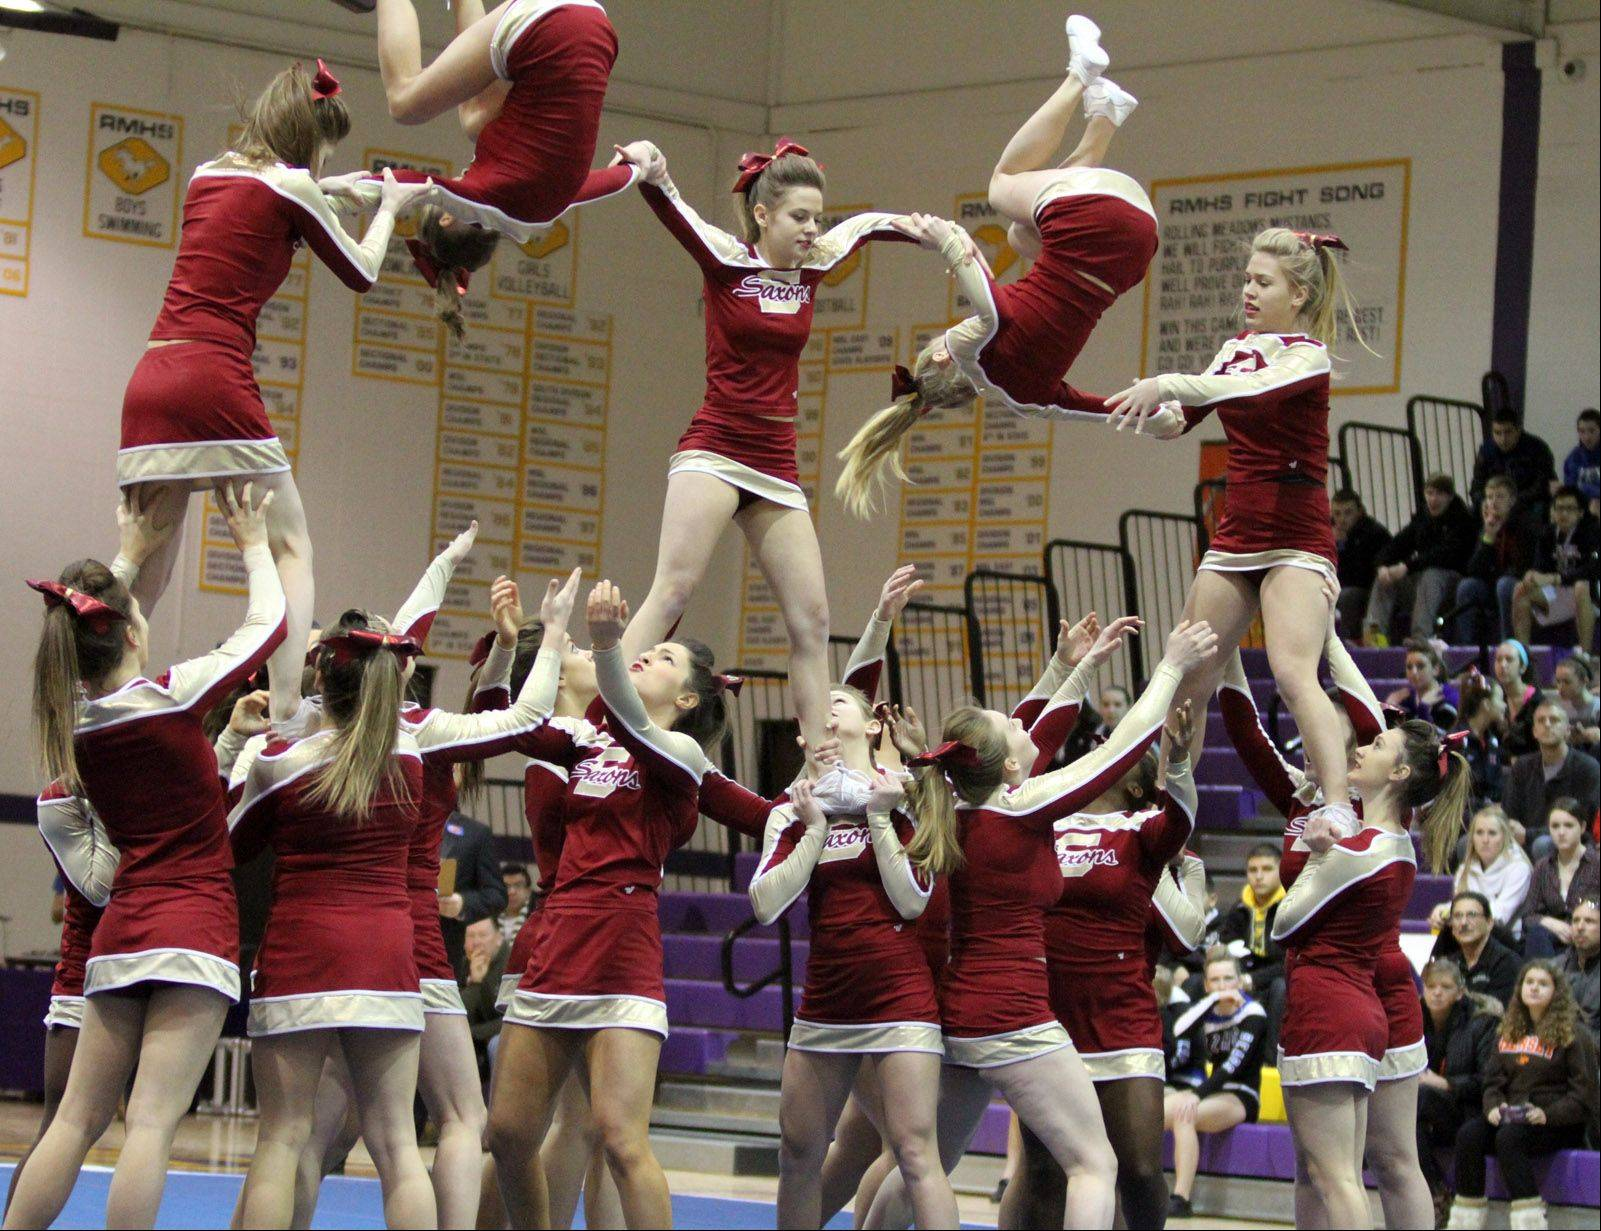 Schaumburg High School performs at the IHSA competitive cheerleading sectionals in Rolling Meadows on Saturday.